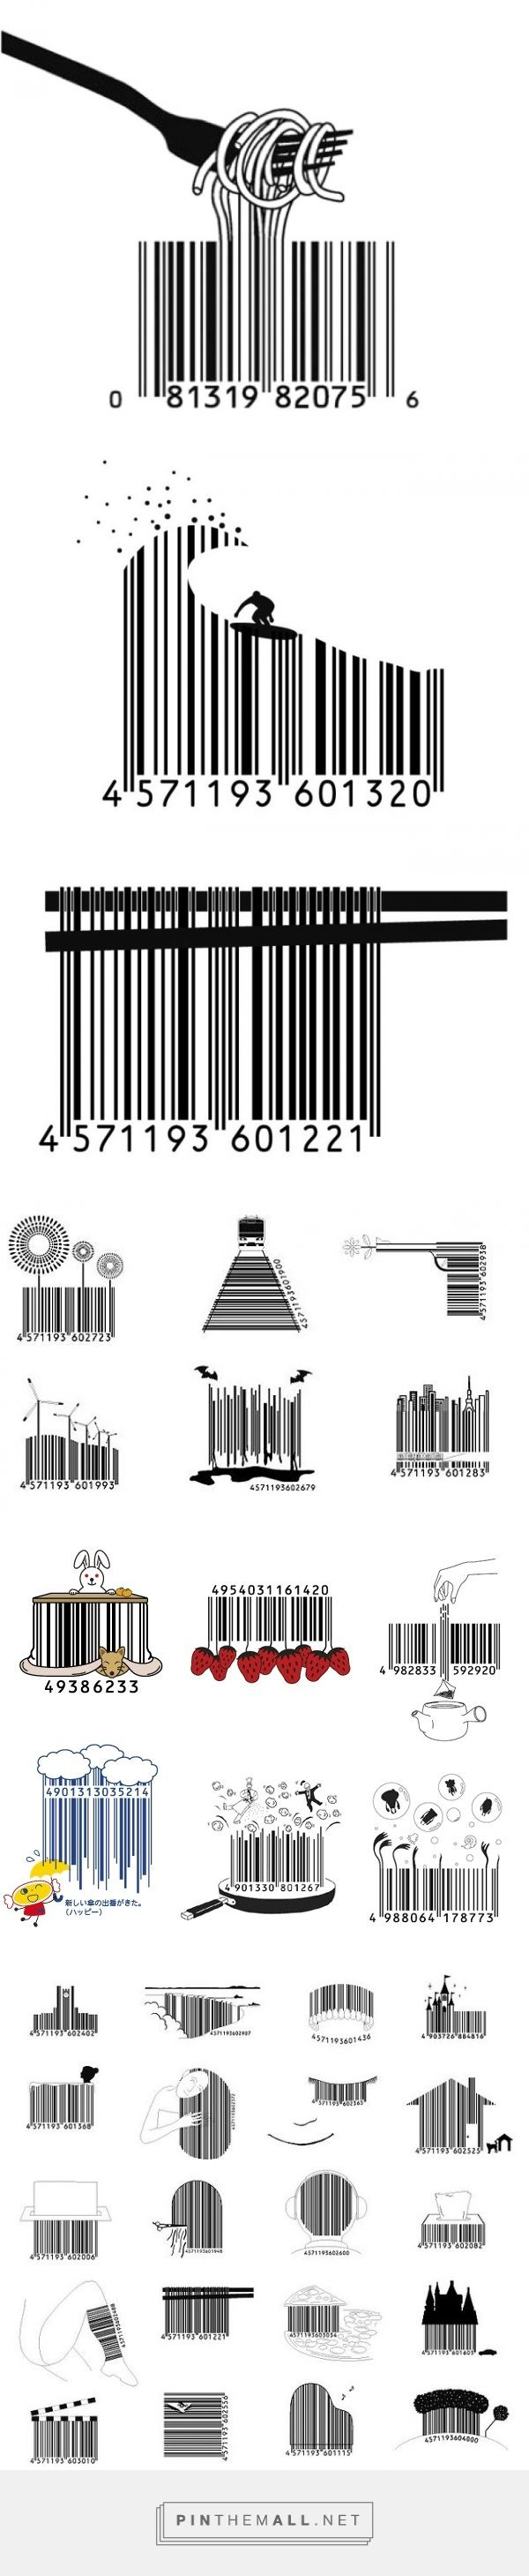 These Japanese Barcodes Are So Kawaii!